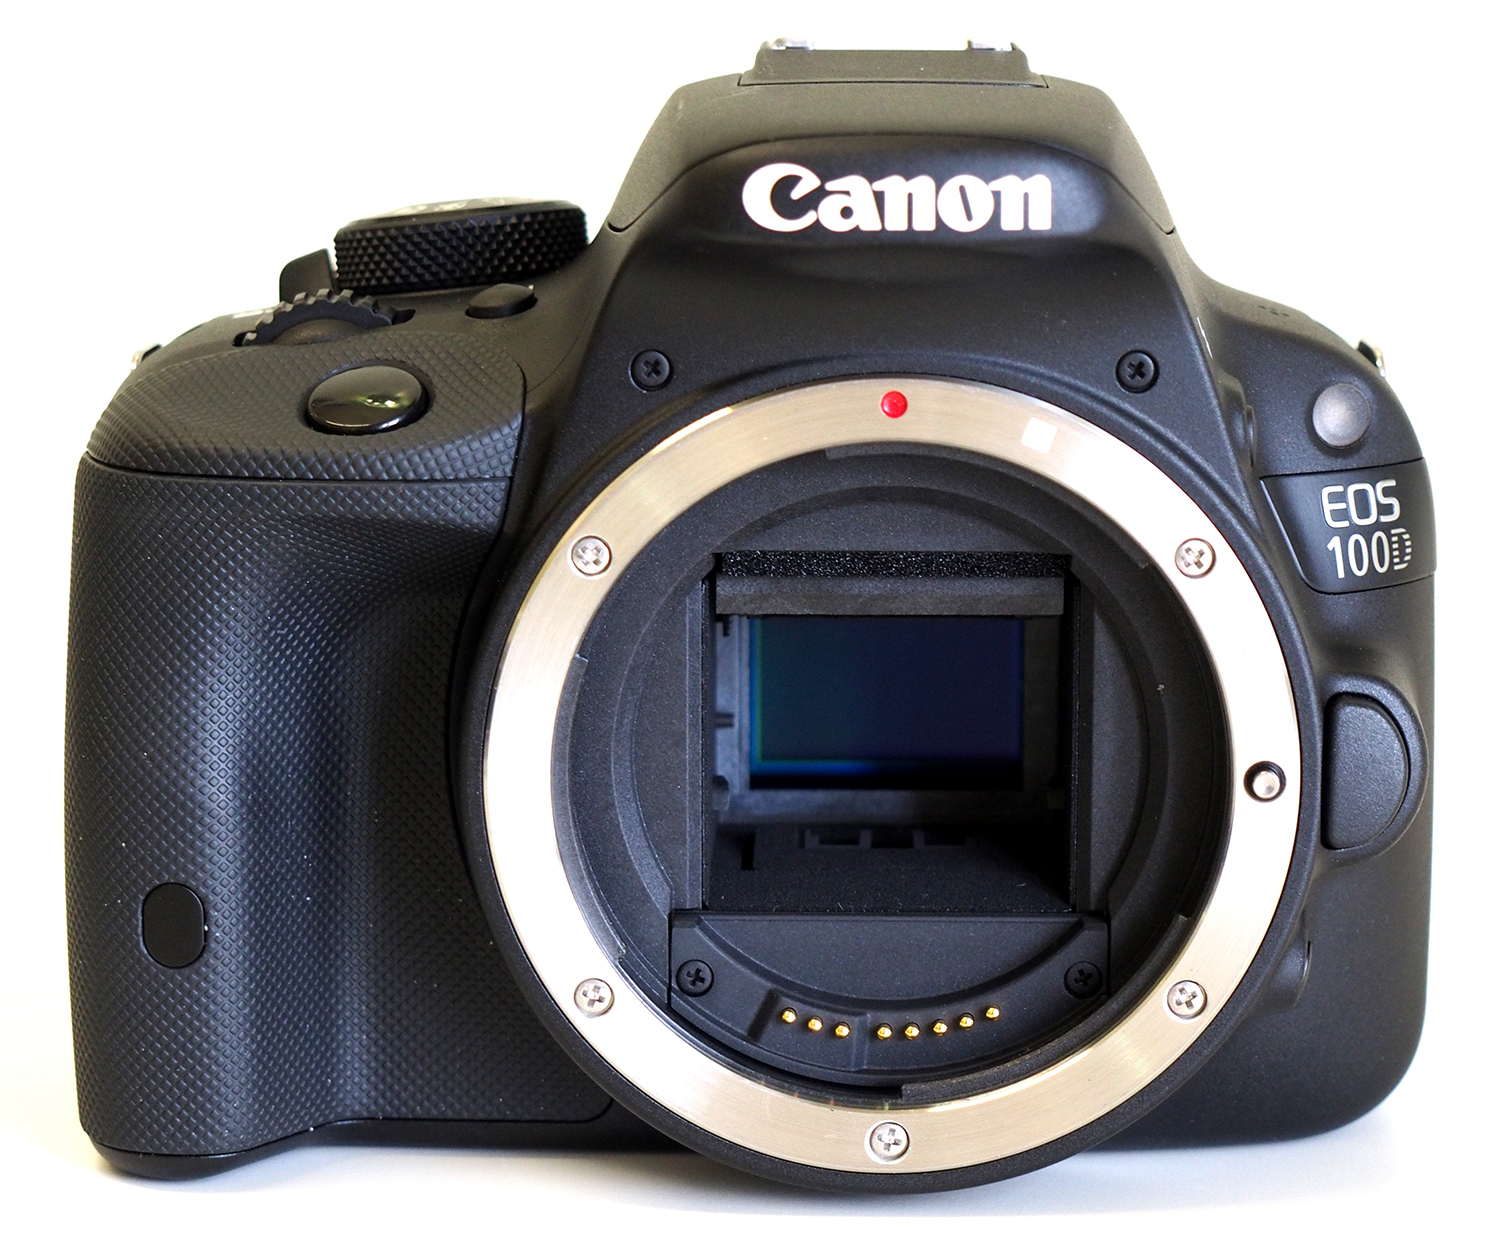 Canon EOS 100D/SL1 First Look Preview Roundup – Camera News